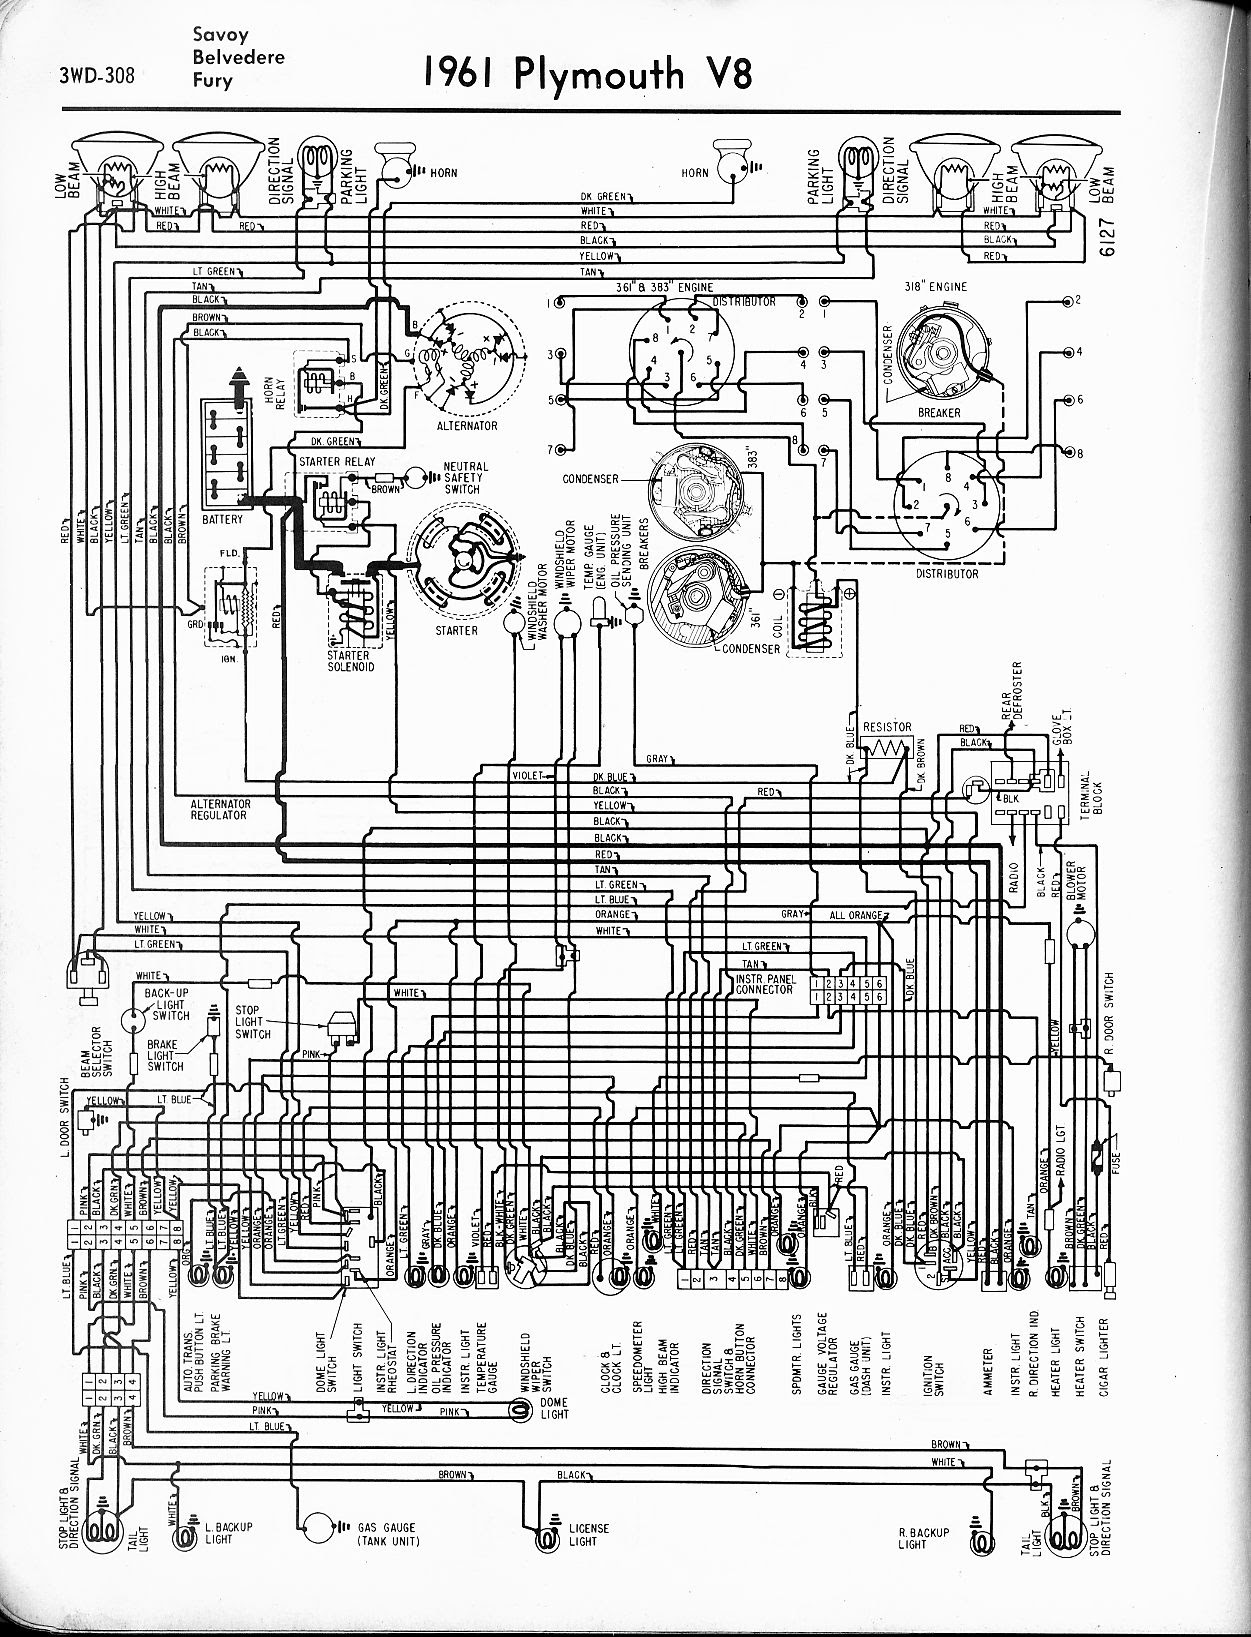 Diagram 1967 Plymouth Wiring Diagram Full Version Hd Quality Wiring Diagram Acewiring19 Newsetvlucera It